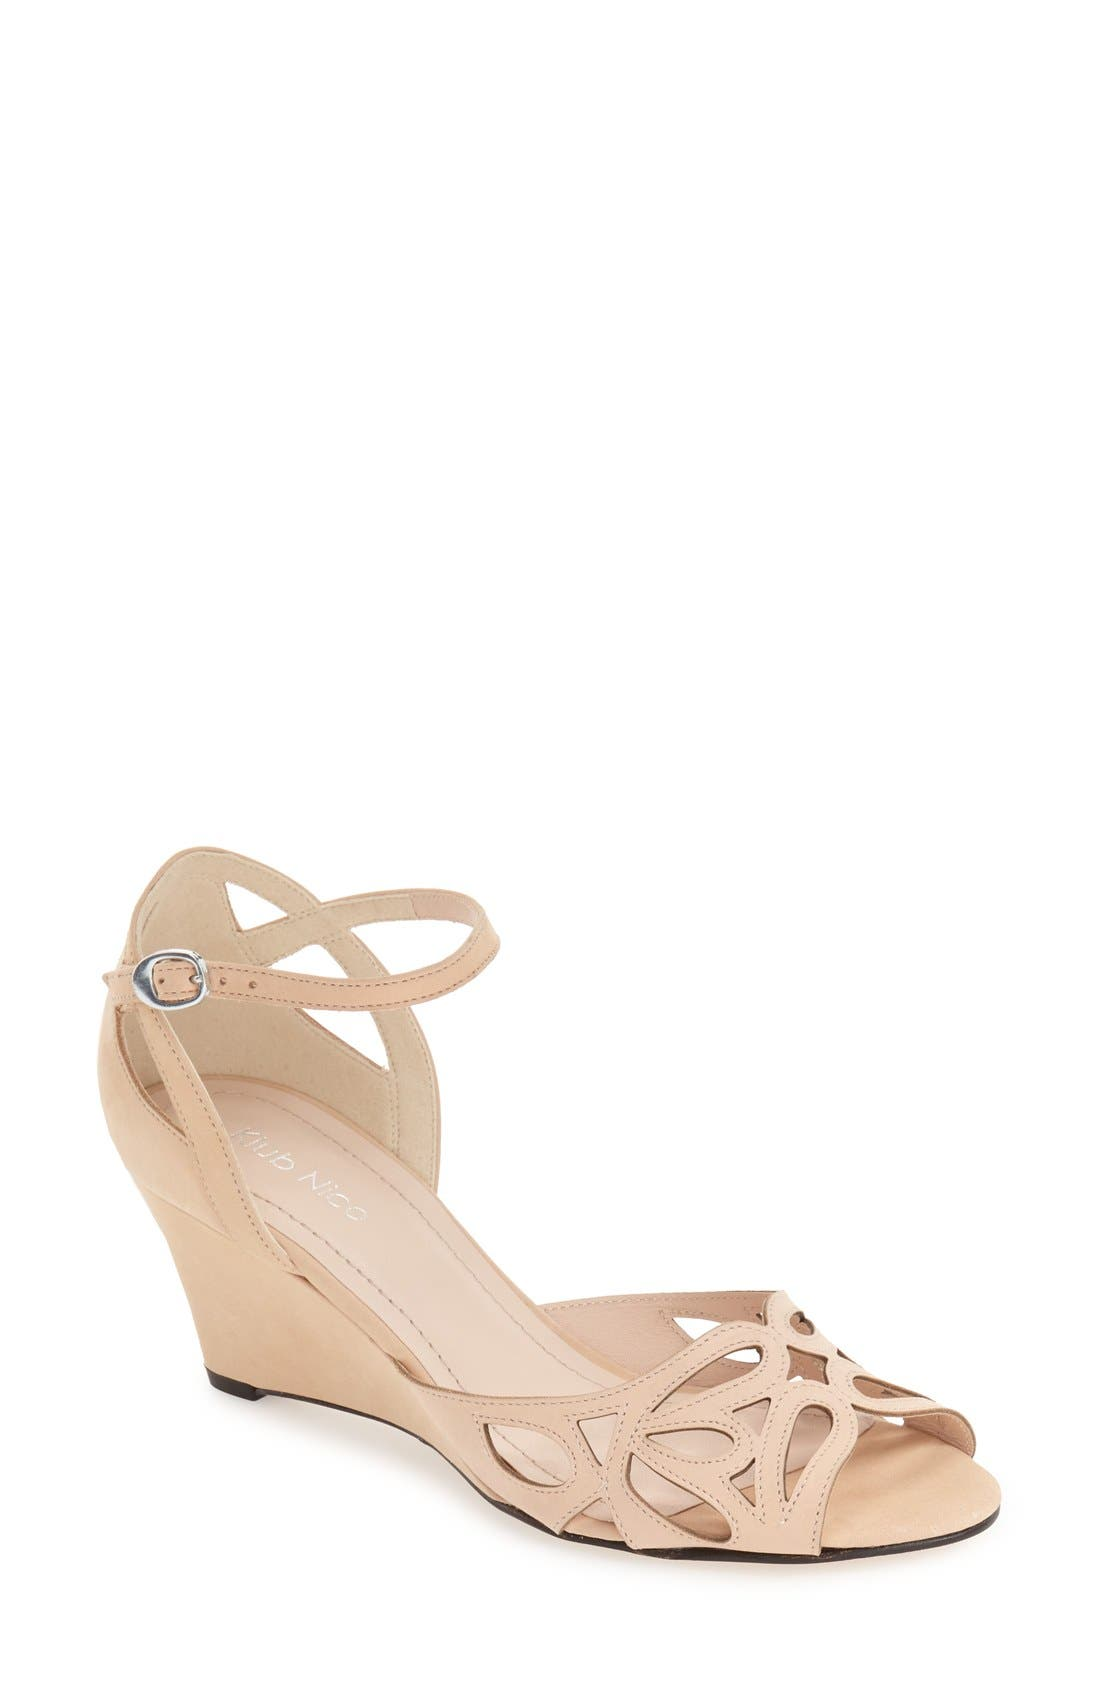 Pretty teardrop cutouts detail the toe strap of a graceful ankle-strap sandal lifted by a cohesive covered wedge. Style Name: Klub Nico \\\'Kismet\\\' Wedge Sandal (Women). Style Number: 5115202. Available in stores.